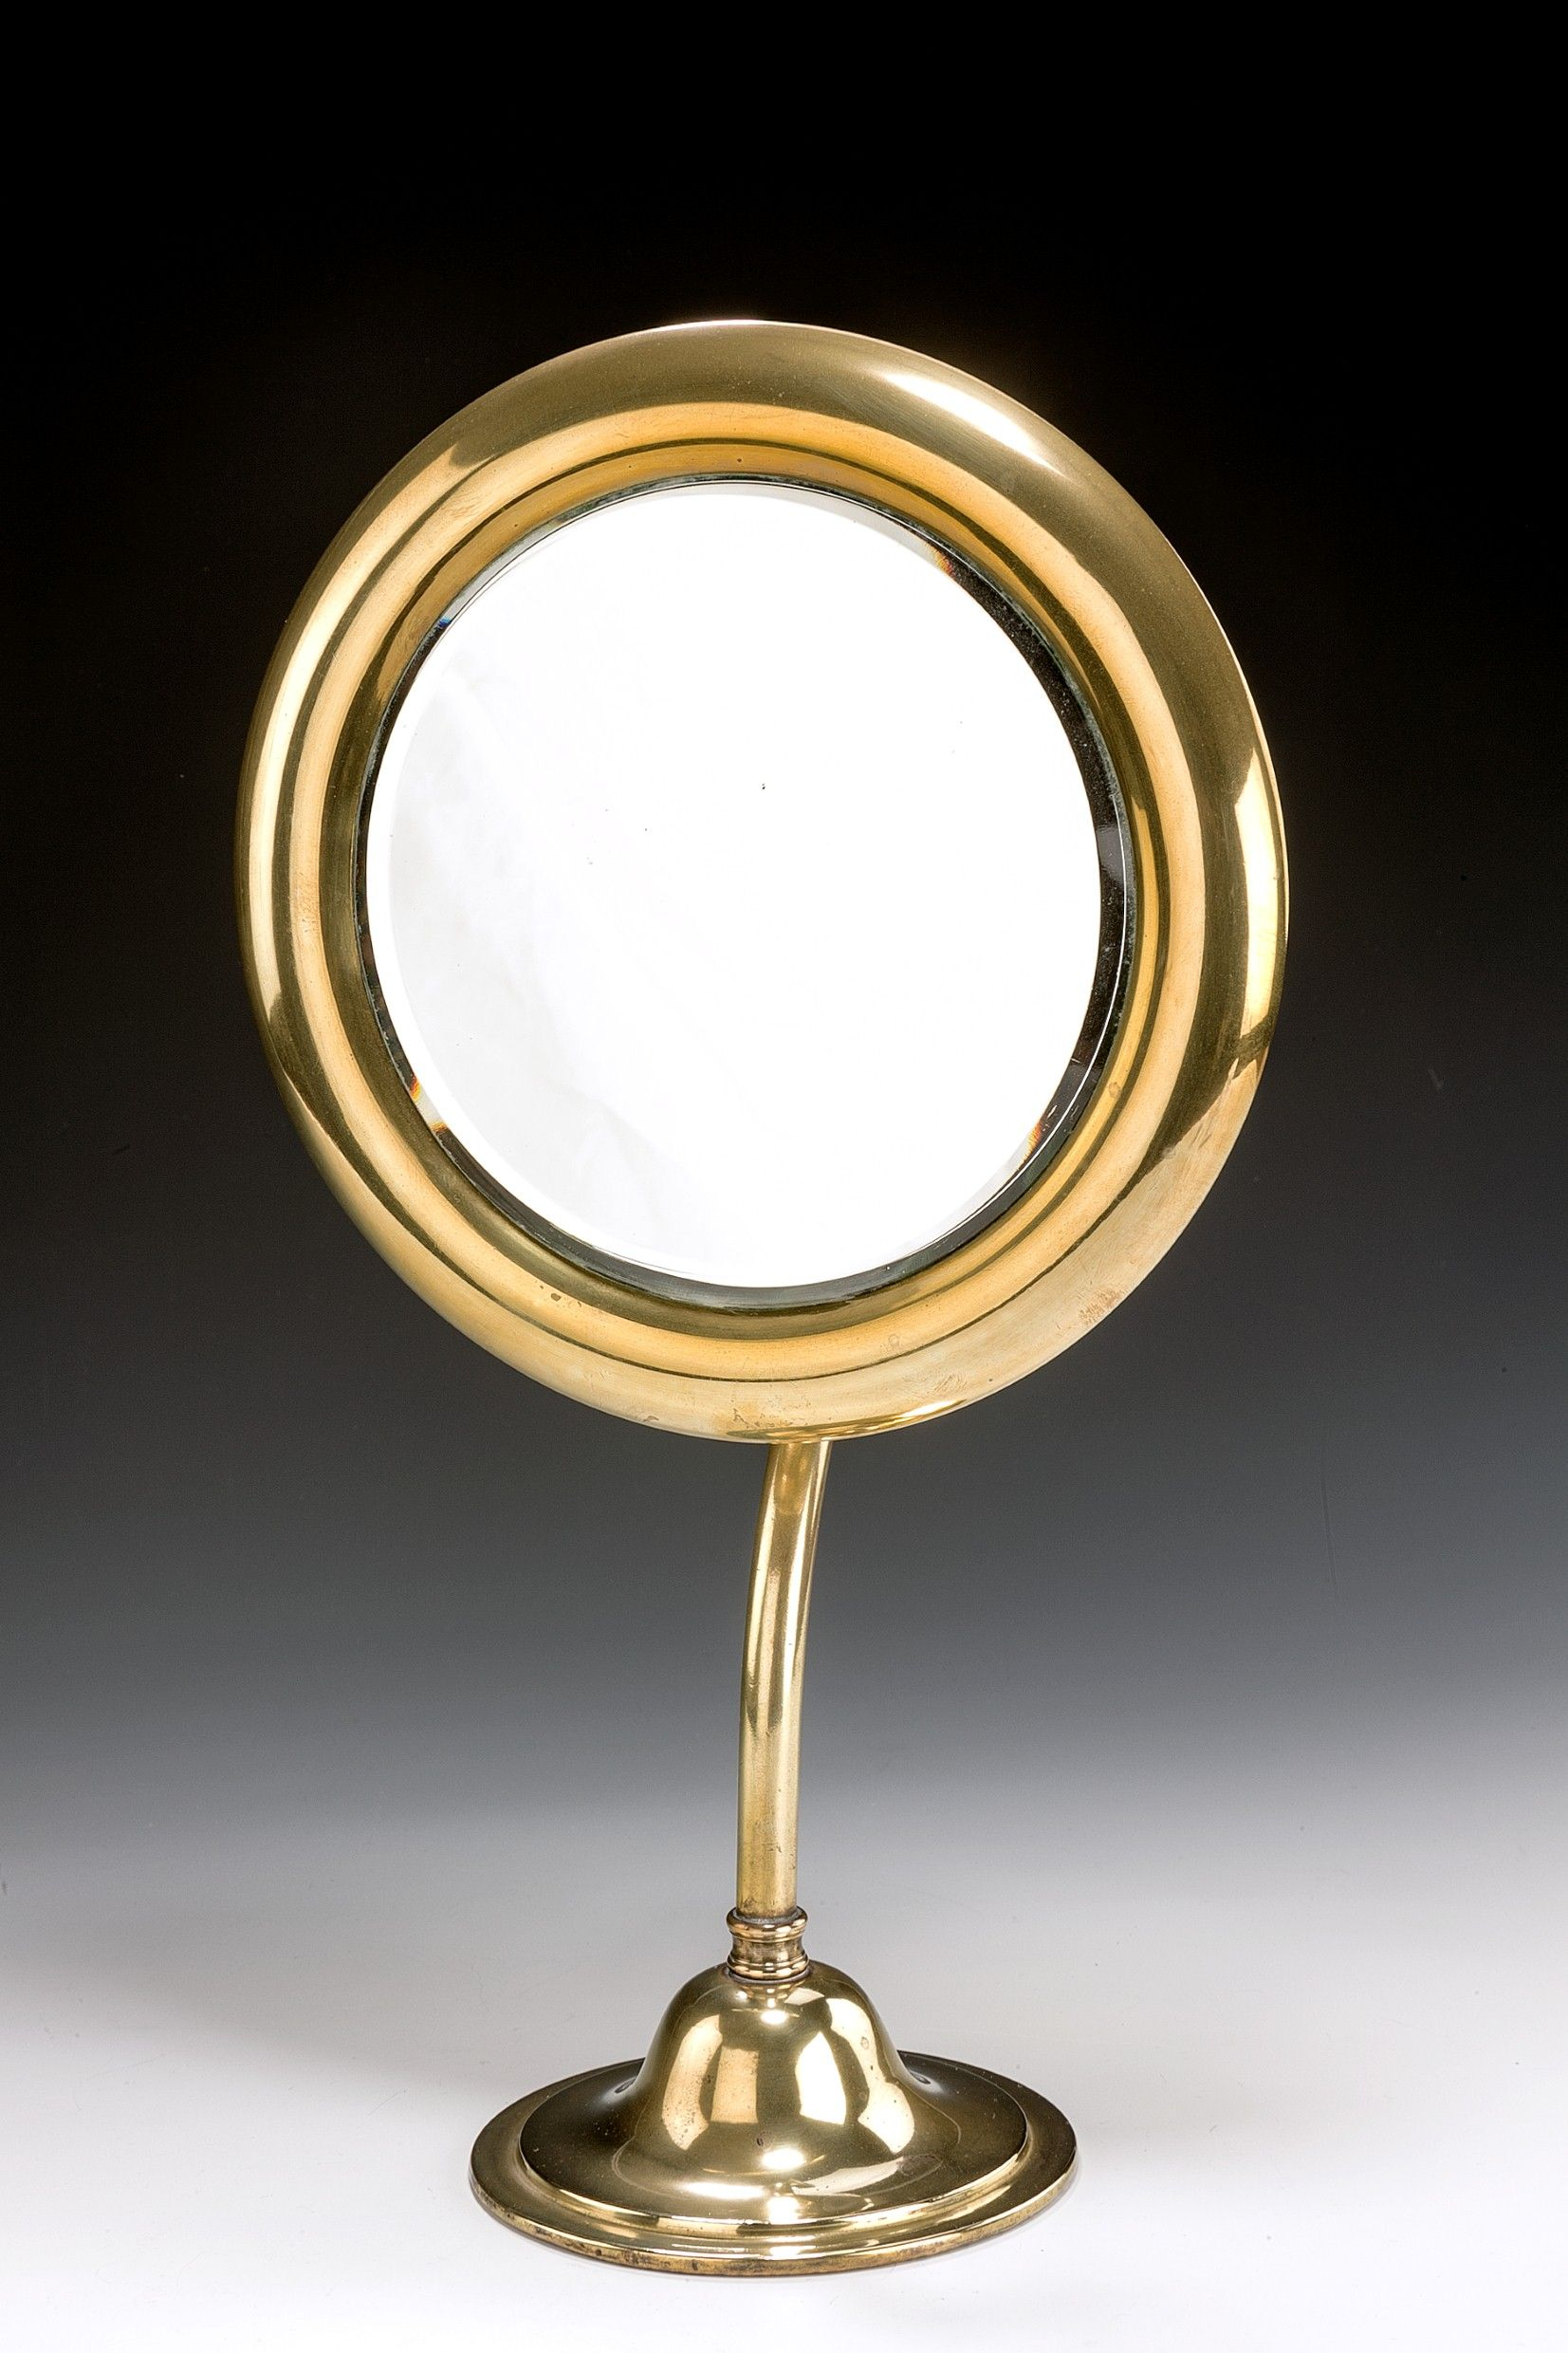 Vintage circular brass adjustable shaving mirror for Shaving mirror